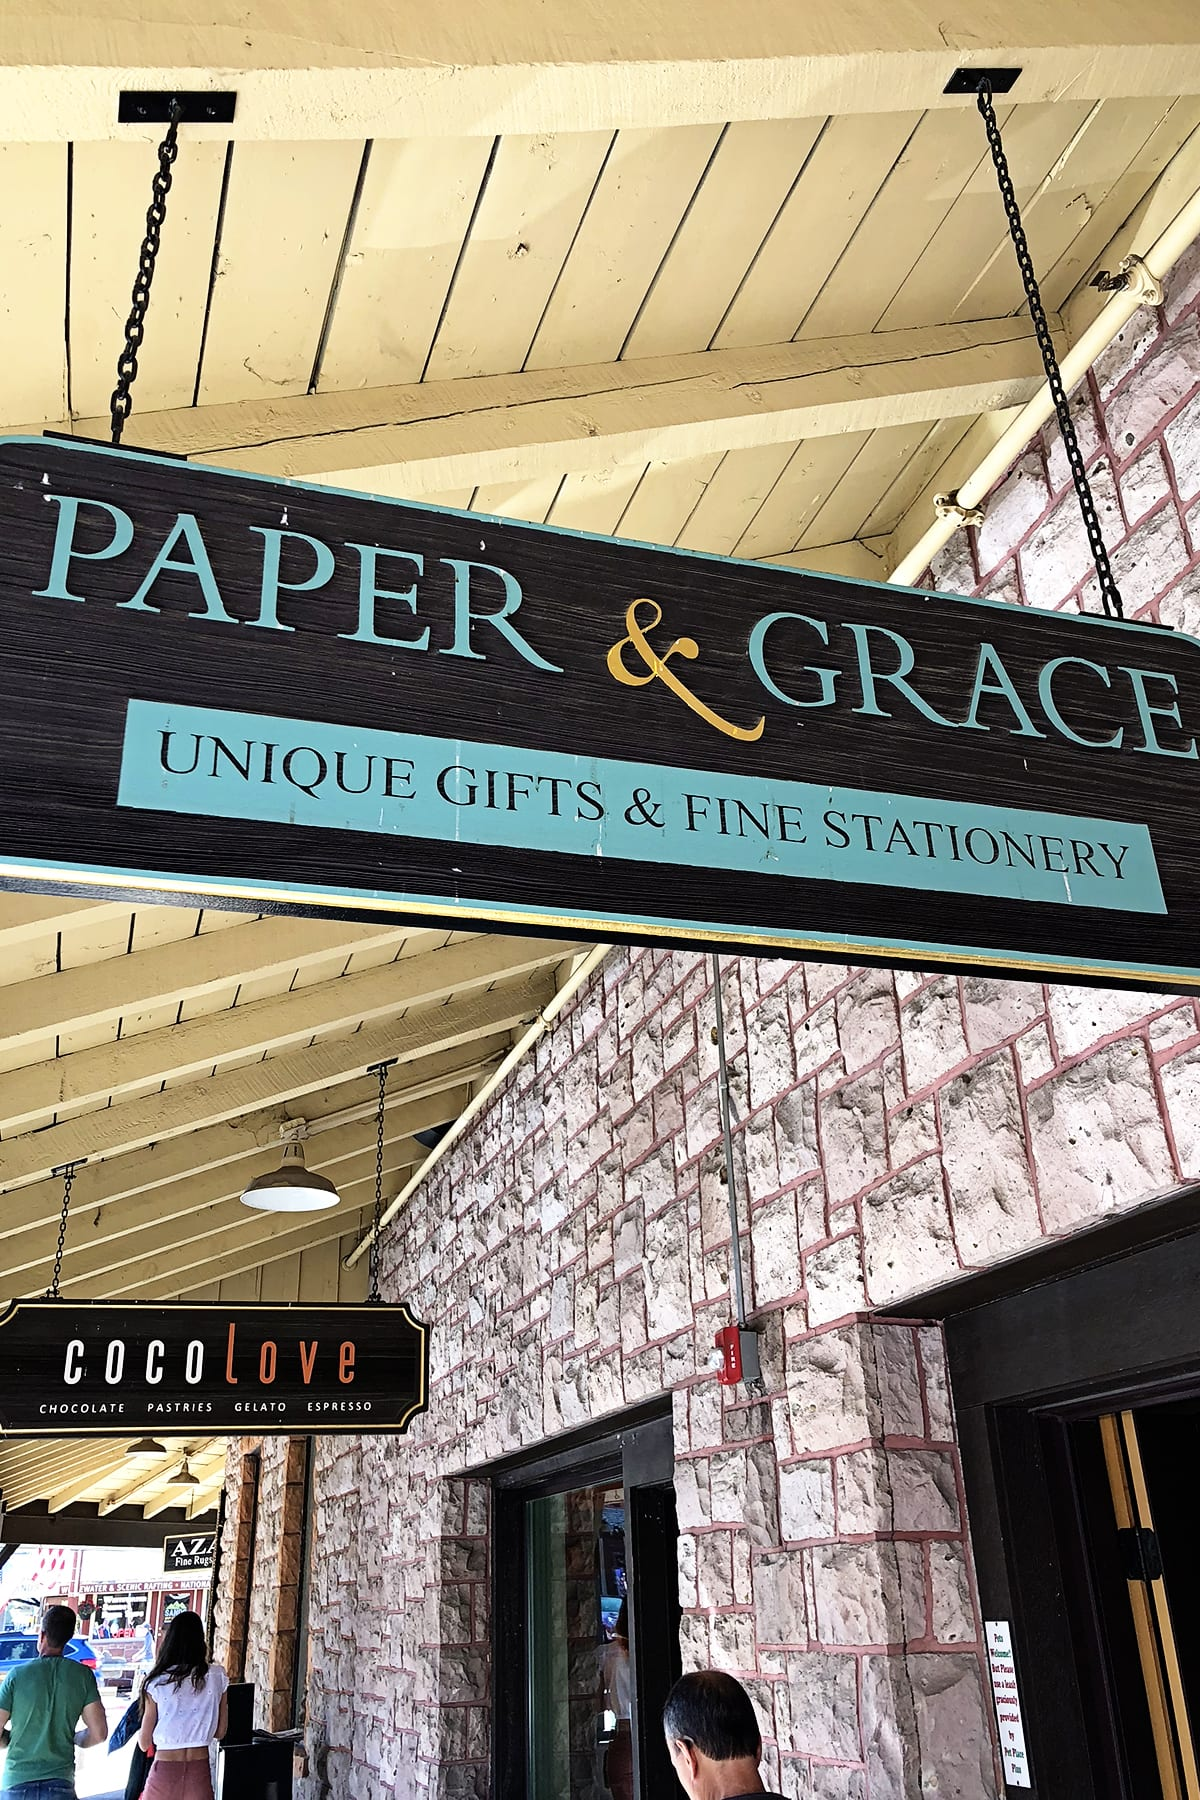 Paper and grace jackson hole WY